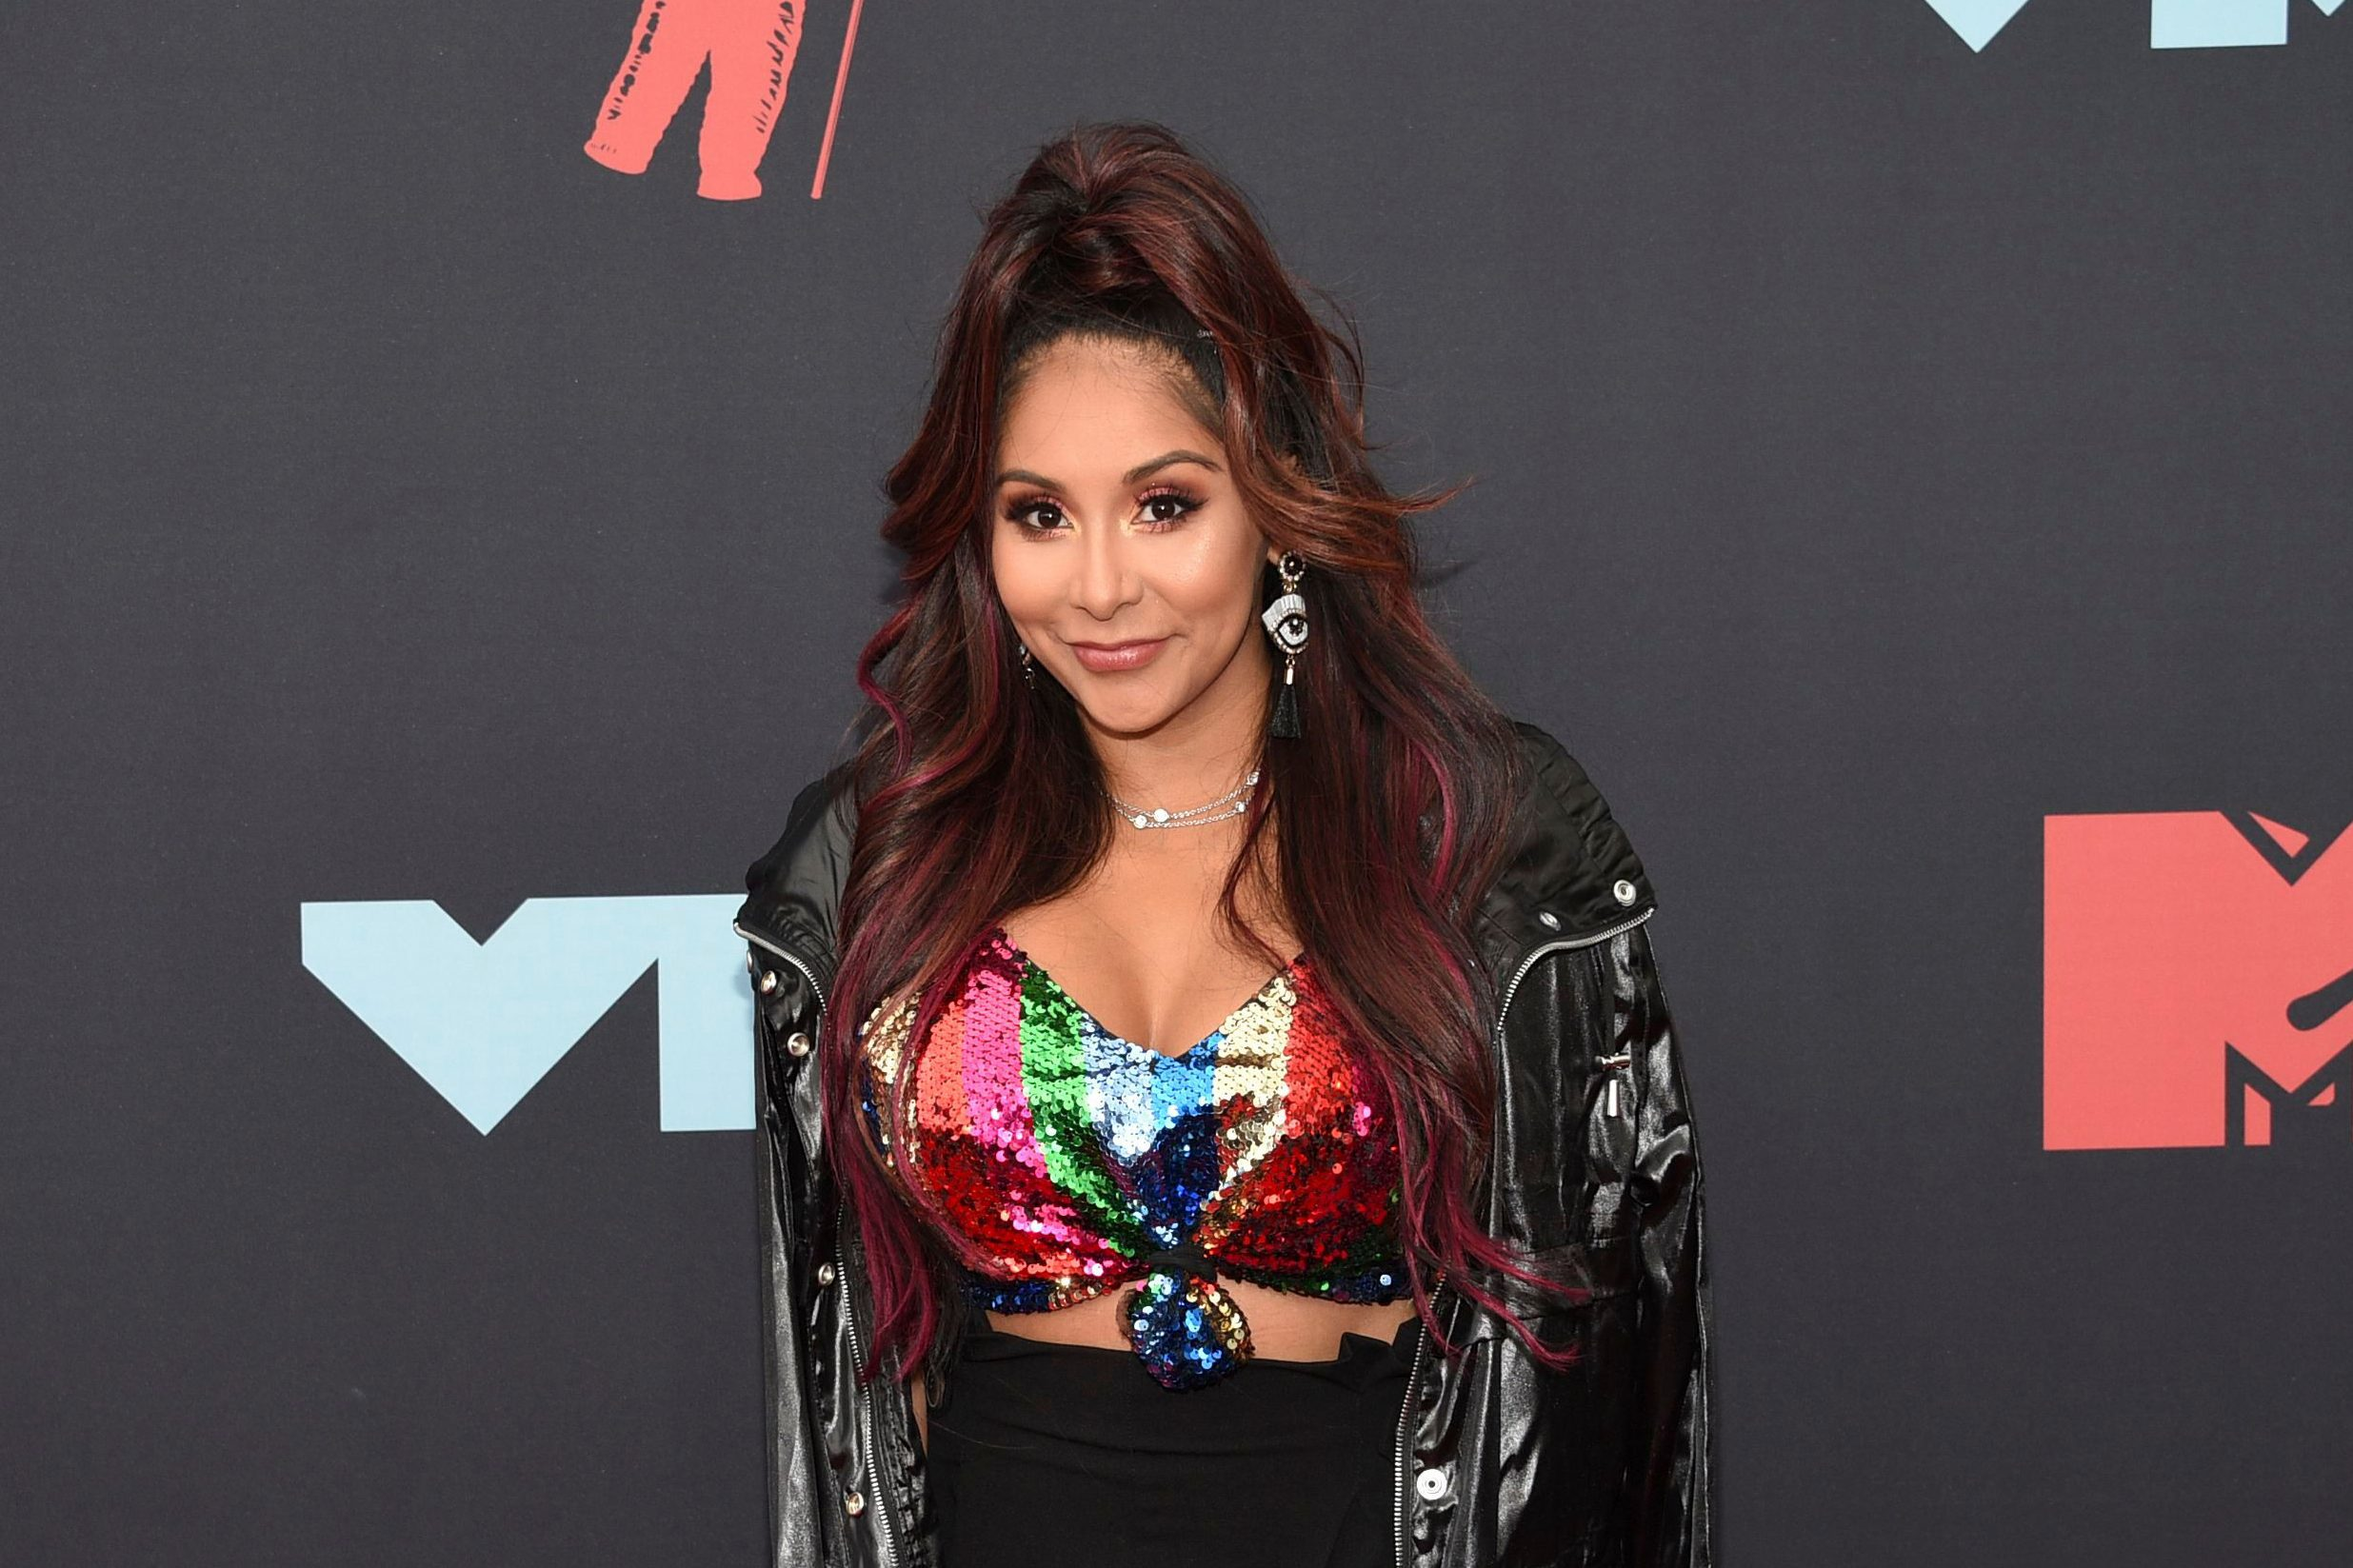 "Mandatory Credit: Photo by Evan Agostini/Invision/AP/Shutterstock (10372528cc) Nicole Snooki Polizzi. Nicole "" Nicole Snooki Polizzi "" Polizzi arrives at the MTV Video Music Awards at the Prudential Center, in Newark, N.J 2019 MTV Video Music Awards - Arrivals, Newark, USA - 26 Aug 2019"